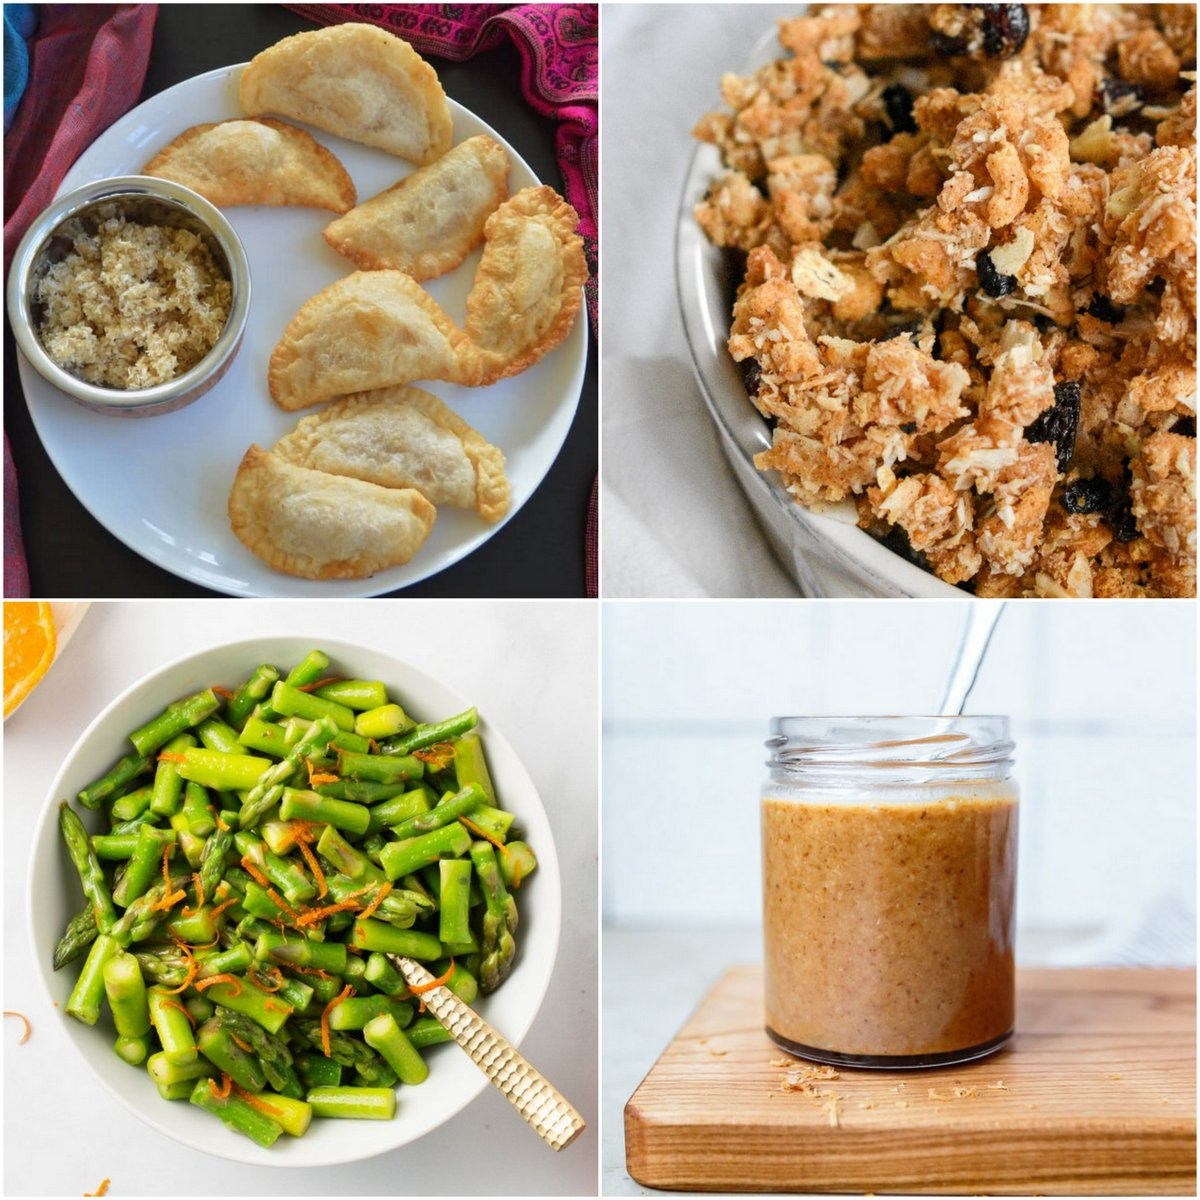 Paleo AIP Recipe Roundtable #364 | Phoenix Helix - *Featured Recipes: Gujiyas, Lovebird Cheerio Granola, Spring Orange Asparagus, and No-Brainer Toasted Coconut Butter.